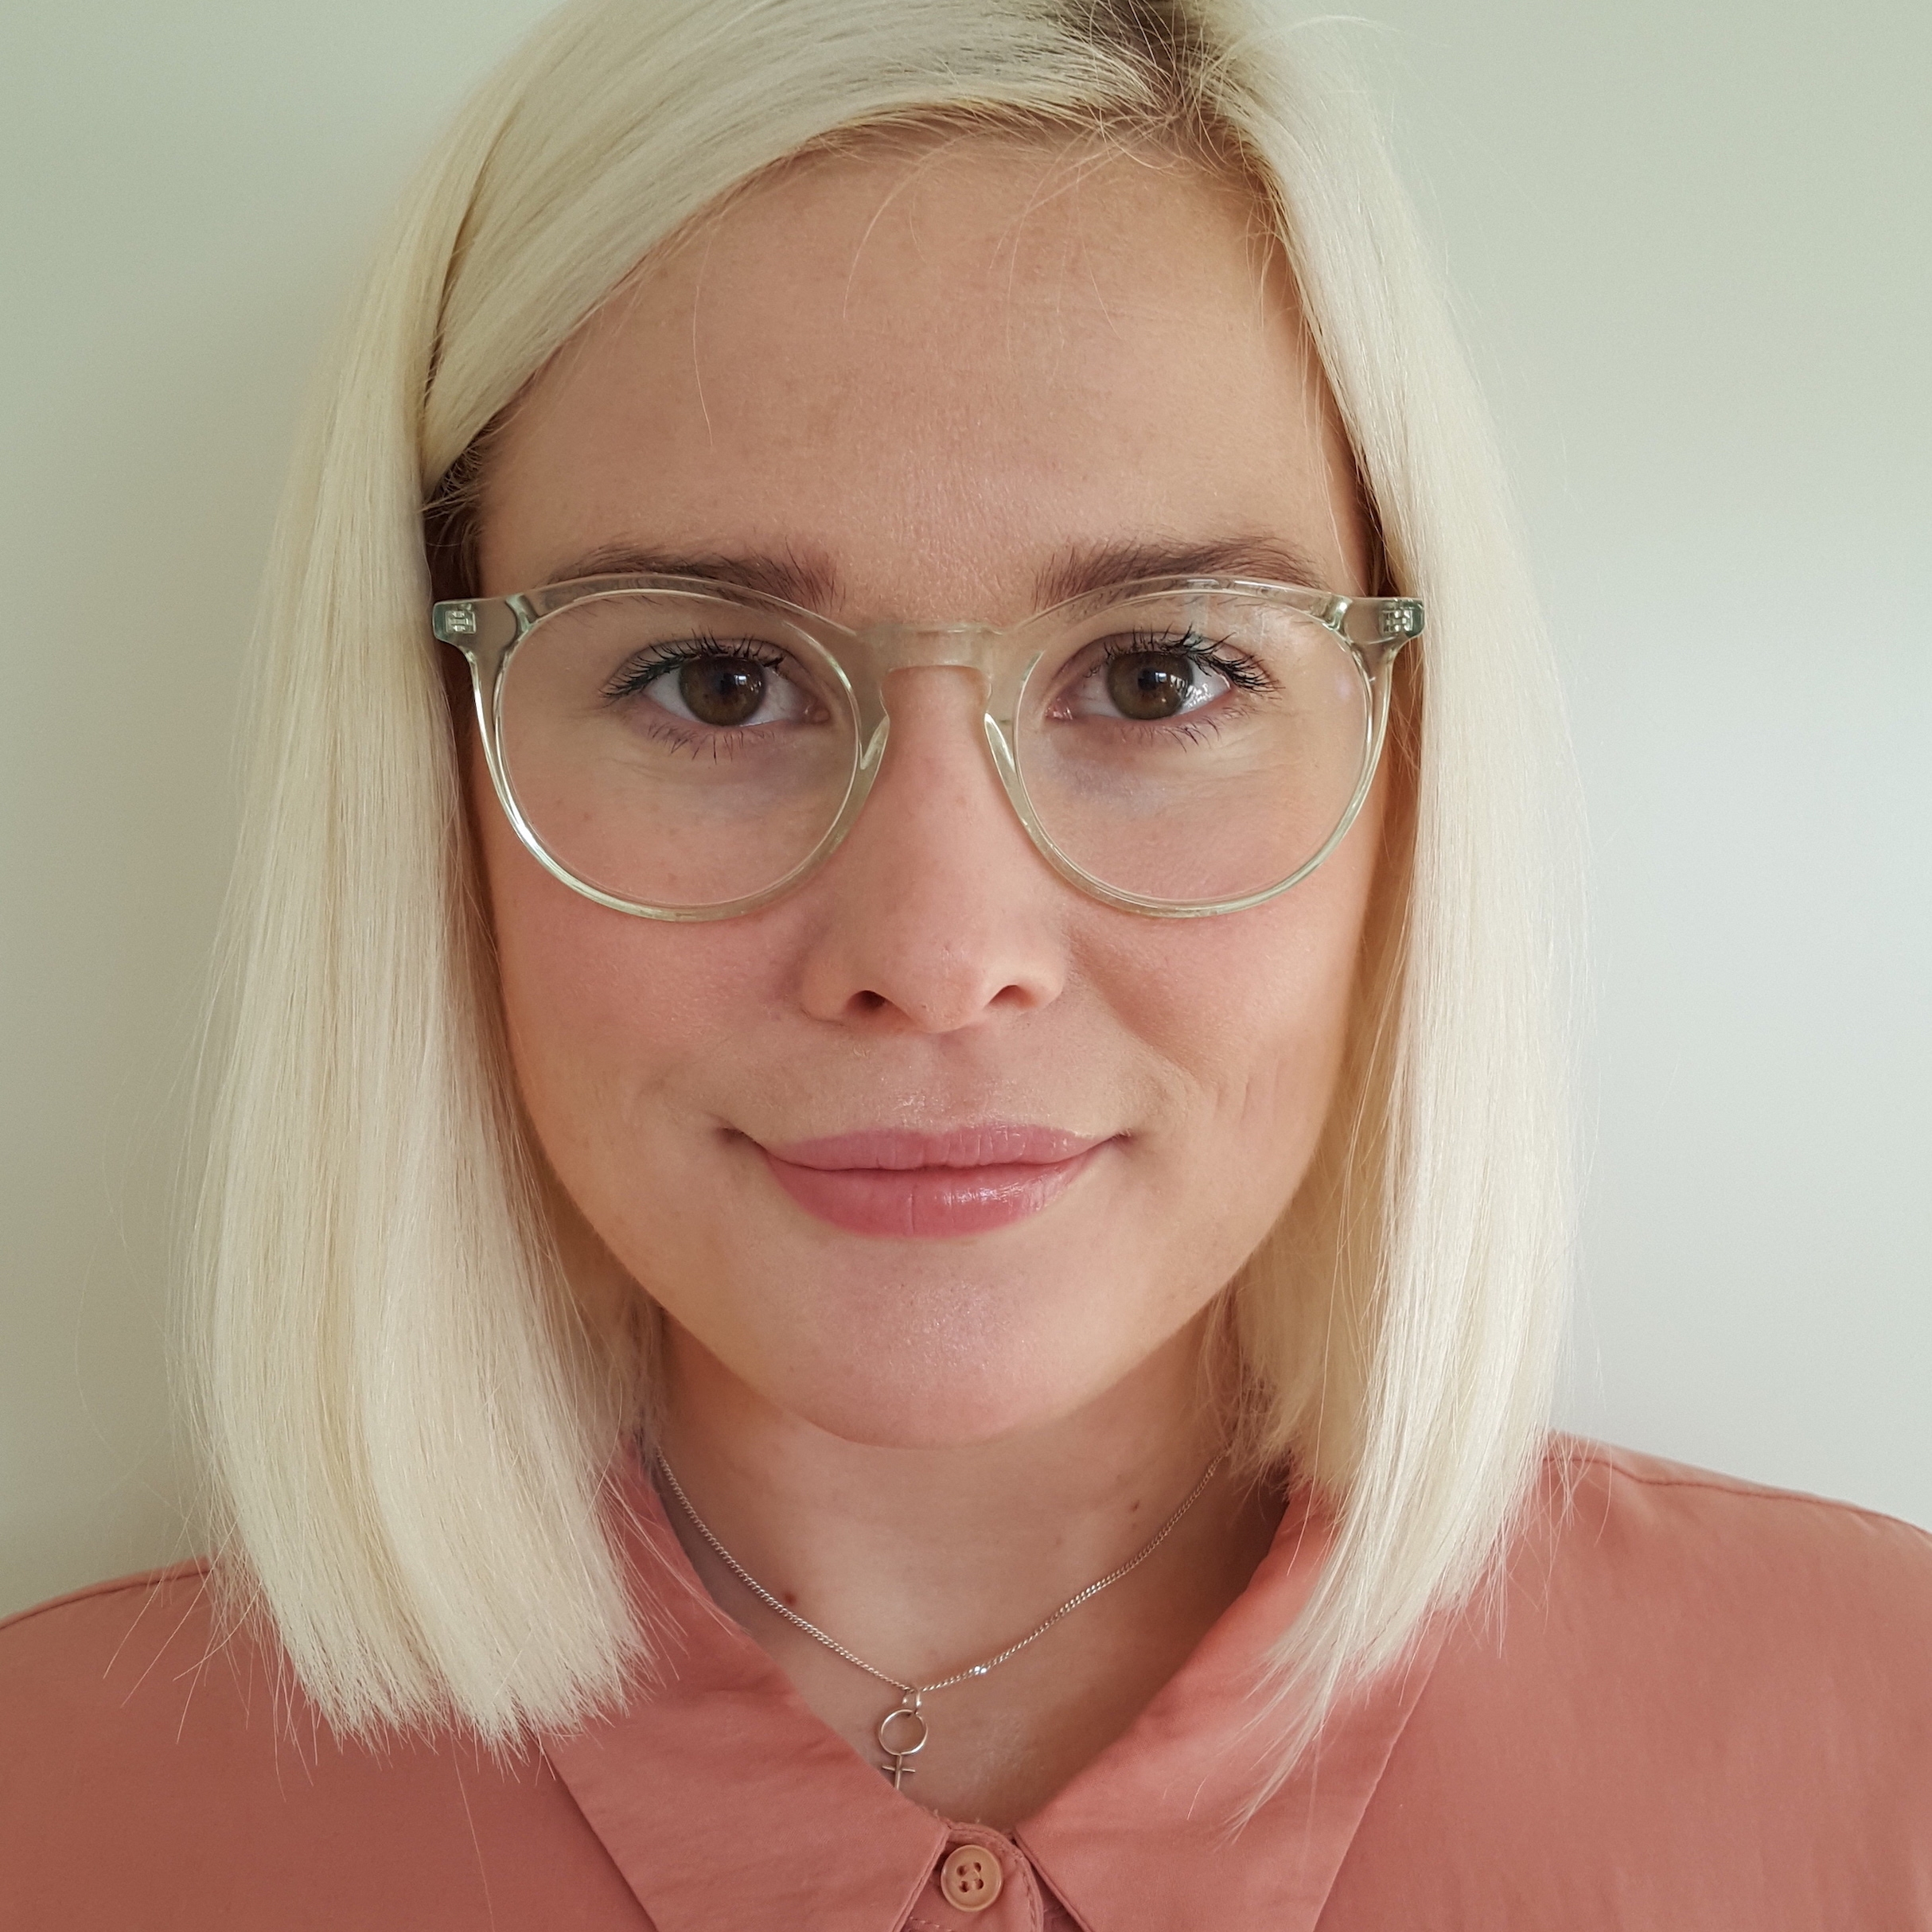 Editorial assistant     Mathilda Åkerlund   Mathilda Åkerlund is a PhD candidate in Sociology at Umeå University. Her dissertation explores the role of influential users in the mainstreaming of far-right anti-immigration discourses on social media.